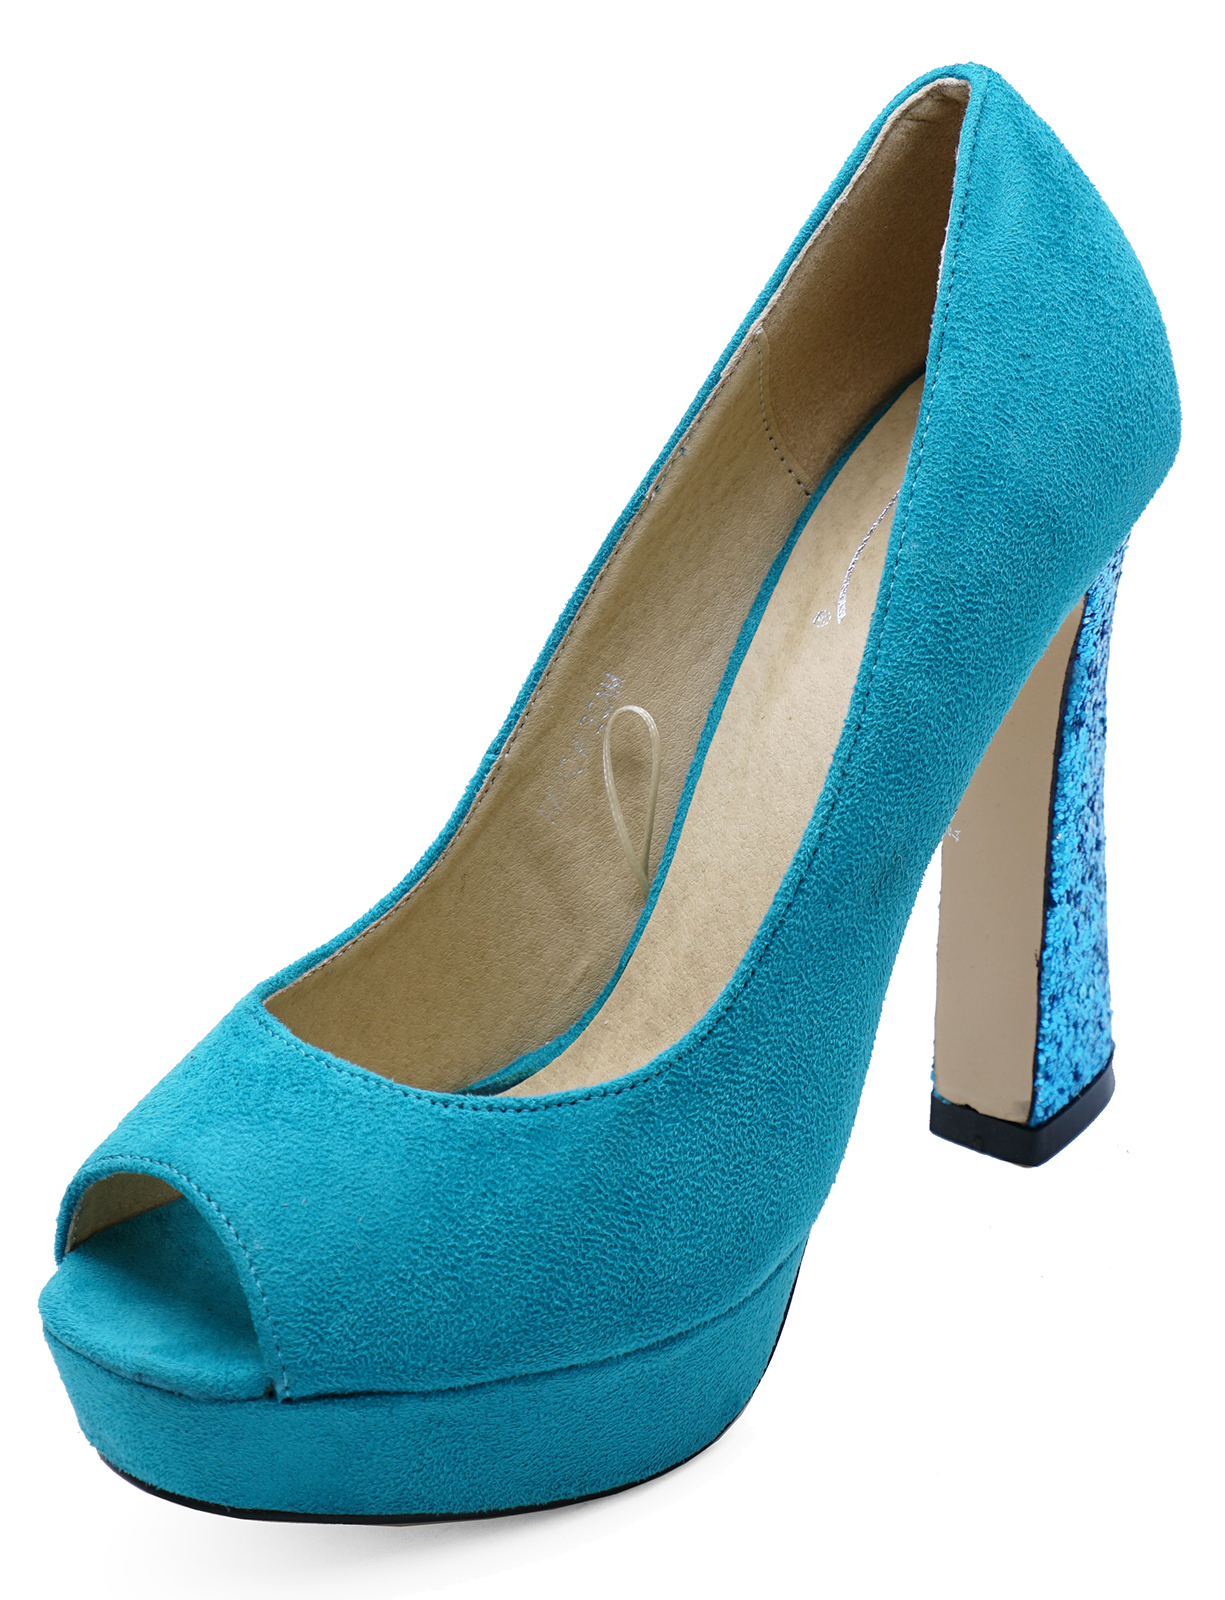 1180cad508 Sentinel WOMENS TURQUOISE SLIP-ON OPEN-TOE COURT PLATFORM HIGH-HEEL PARTY  PROM SHOES